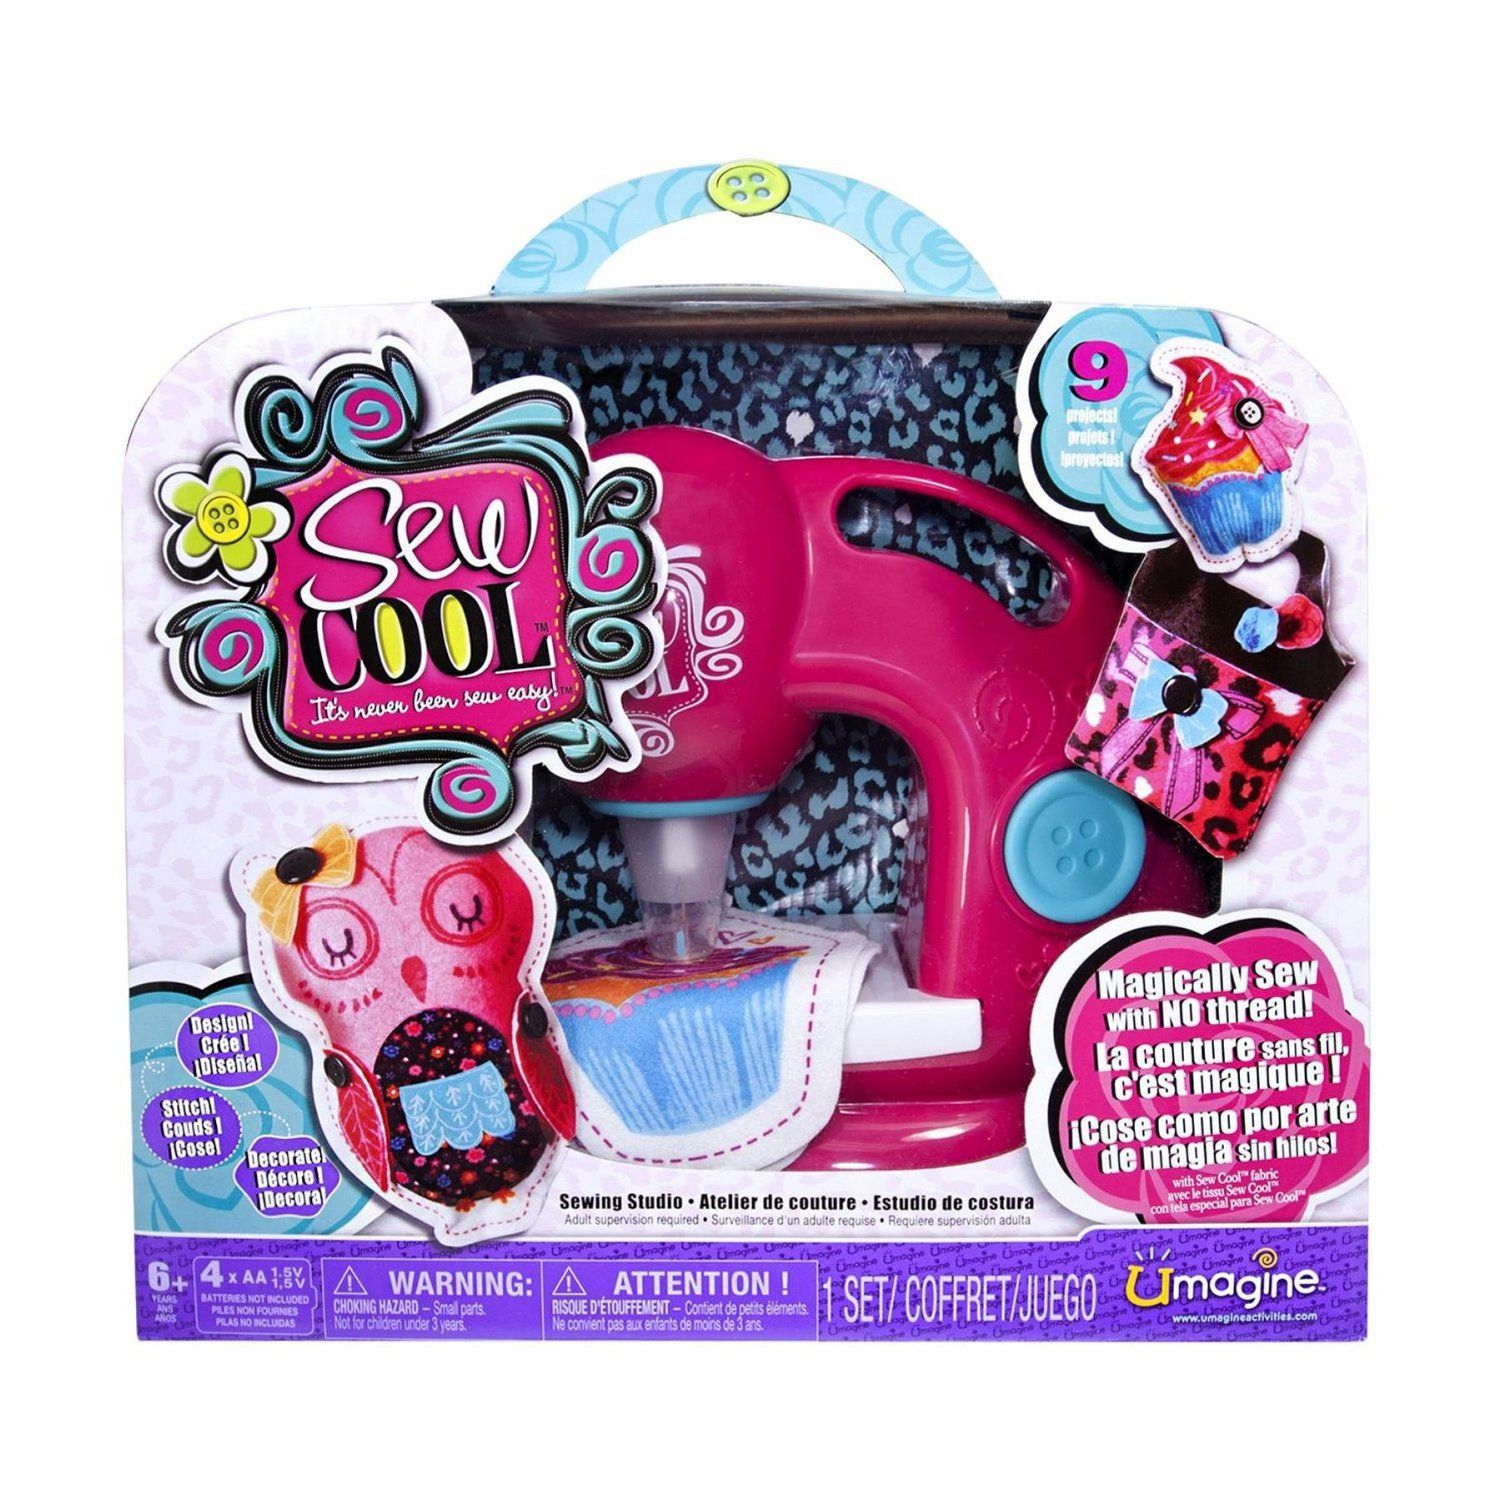 Toys For Tweens : Best gifts and toys for tween girls toy gift